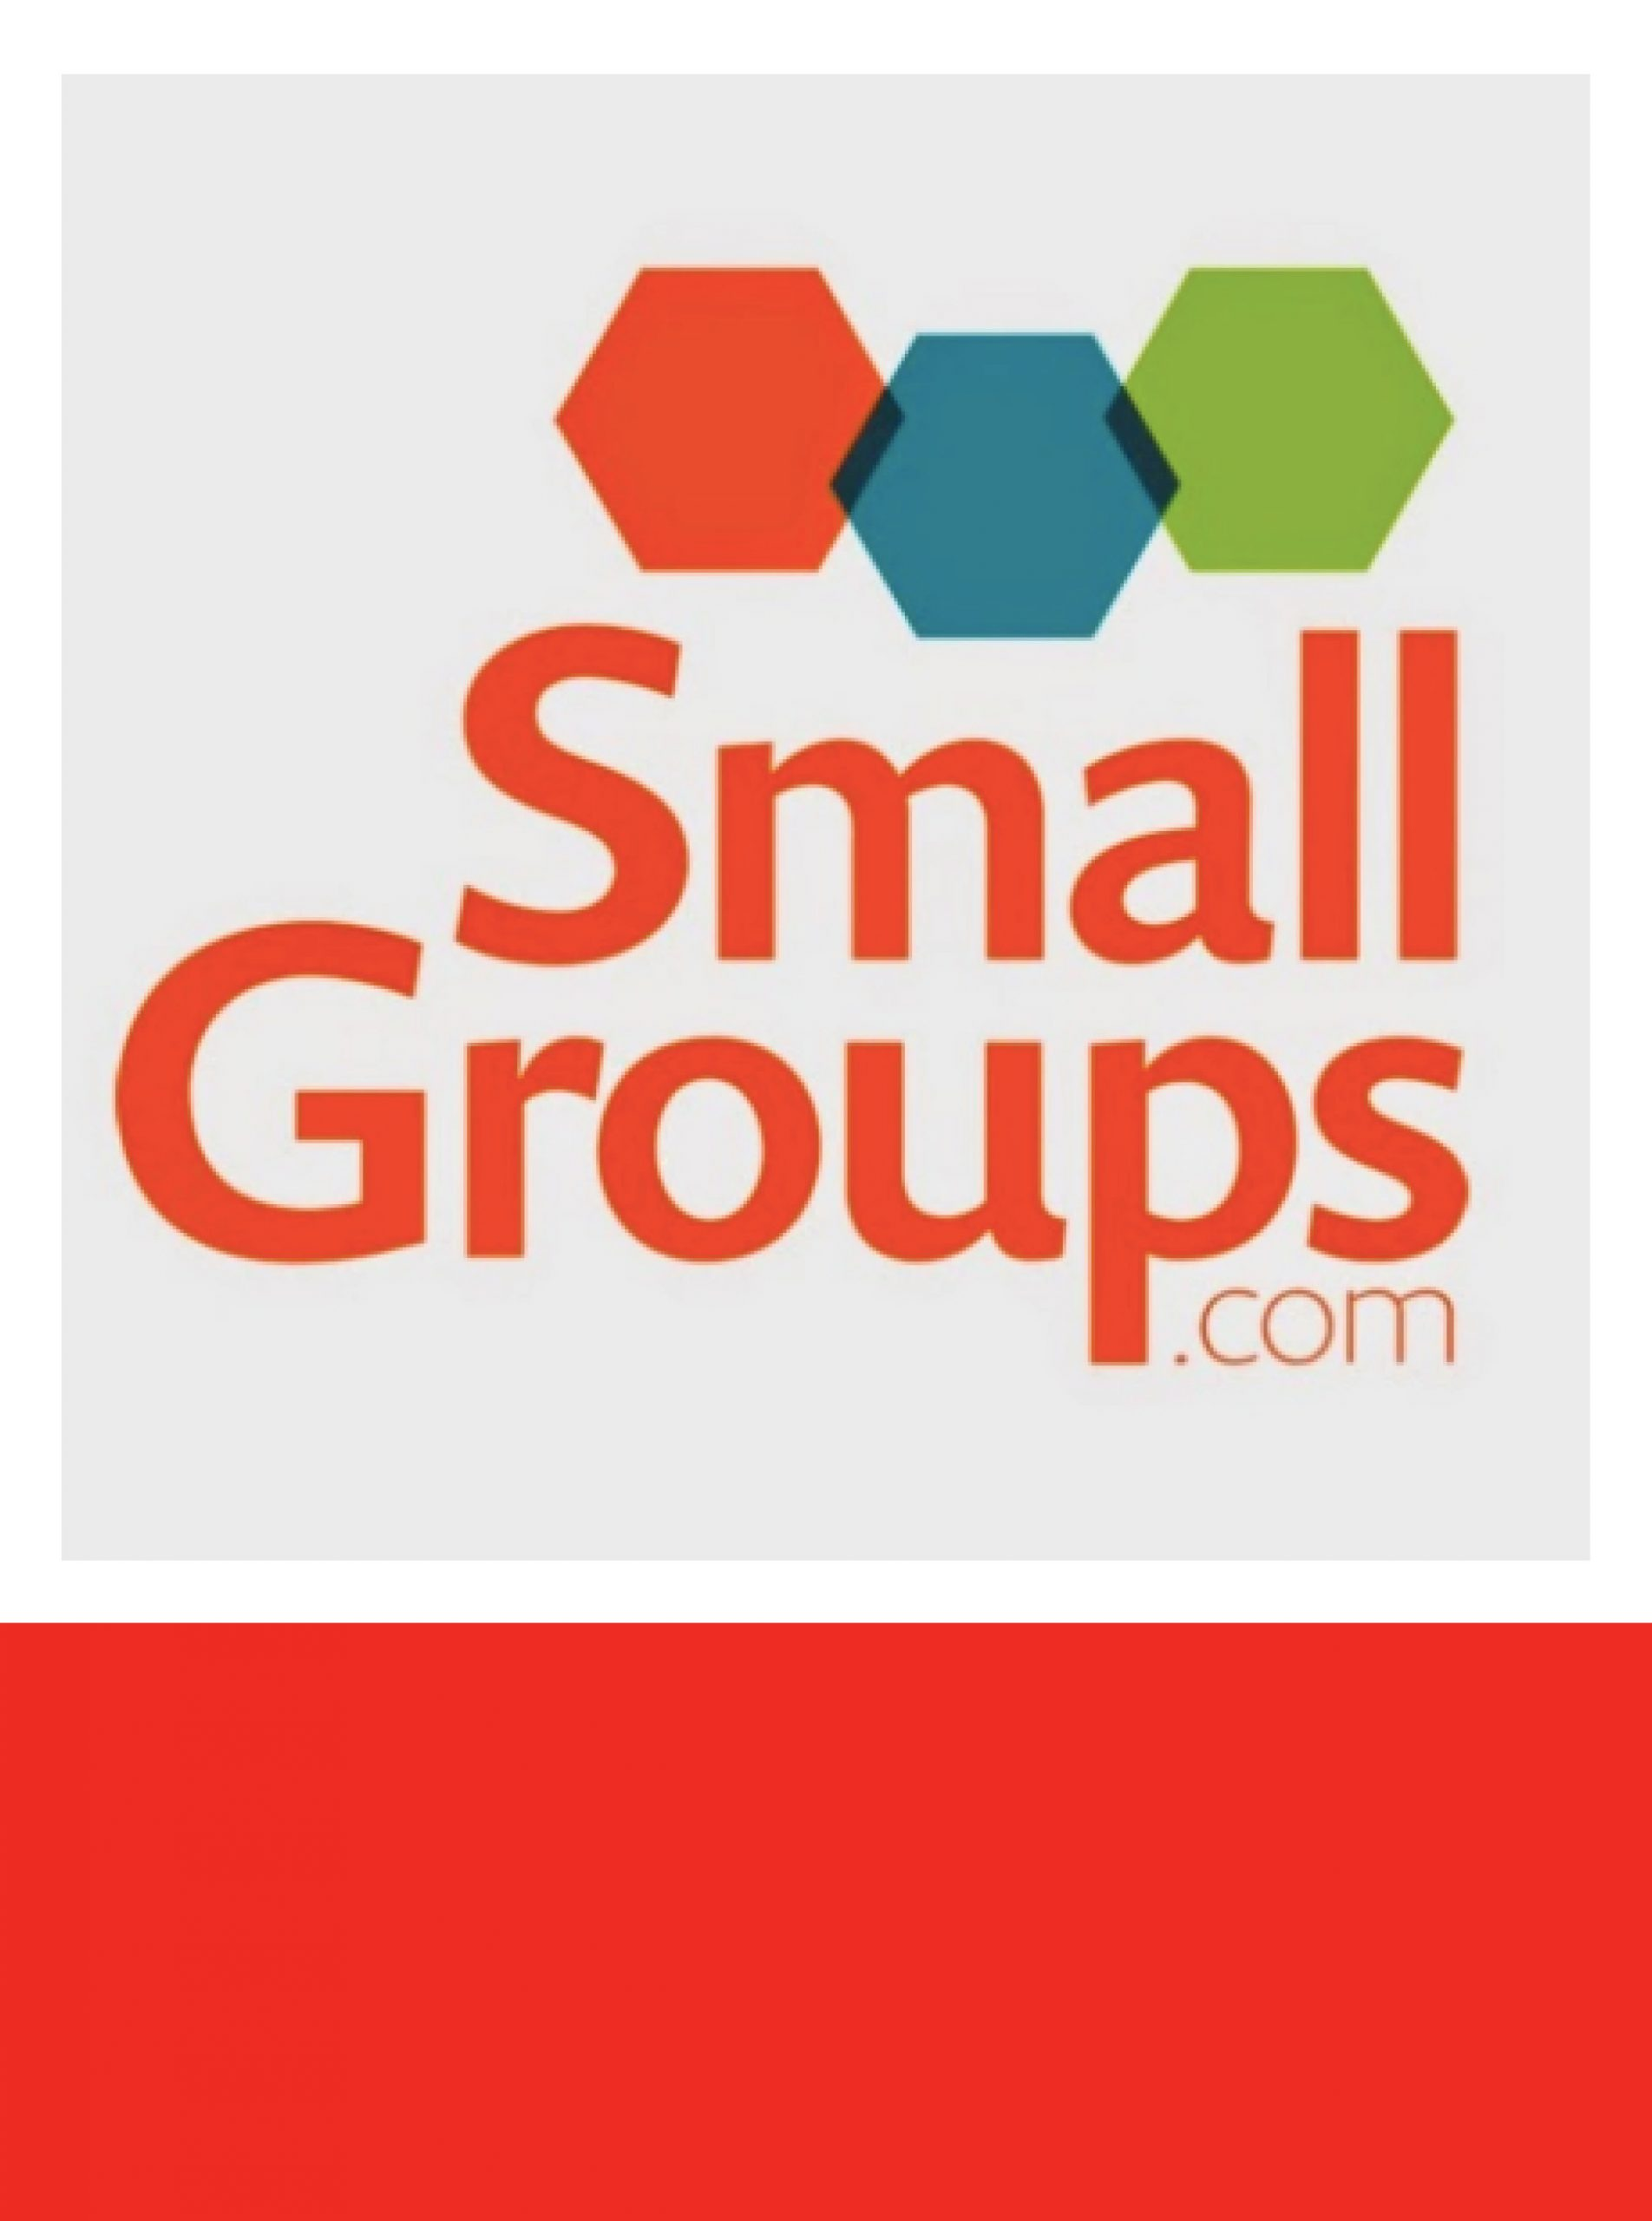 Small Groups.com